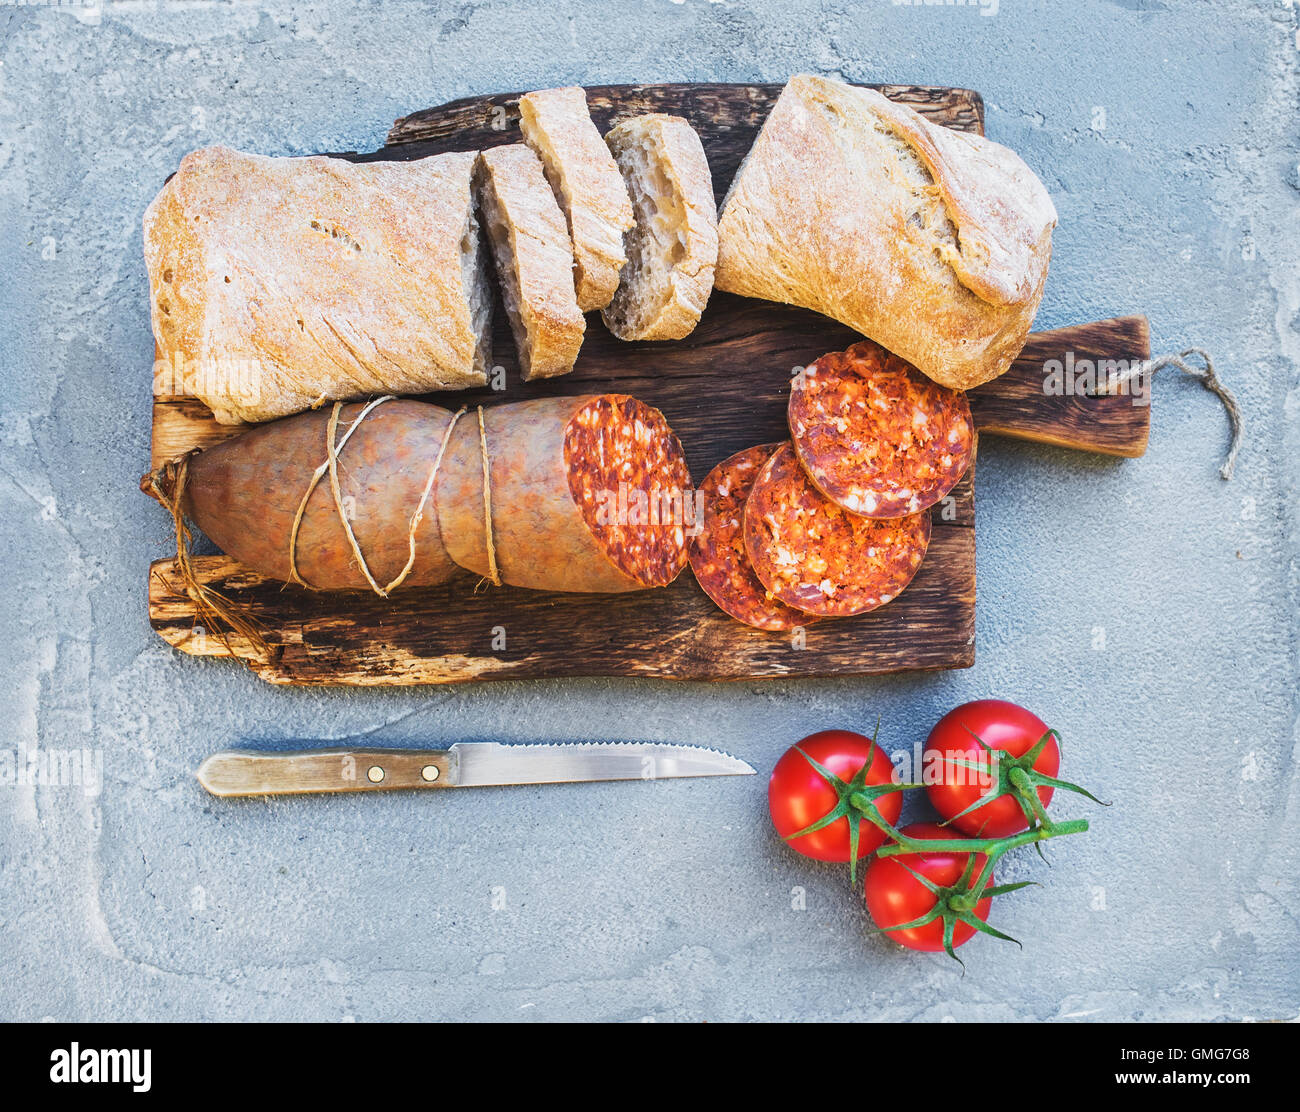 Wine snack set. Hungarian mangalica pork salami sausage, rustic bread and fresh tomatoes on dark wooden board over Stock Photo